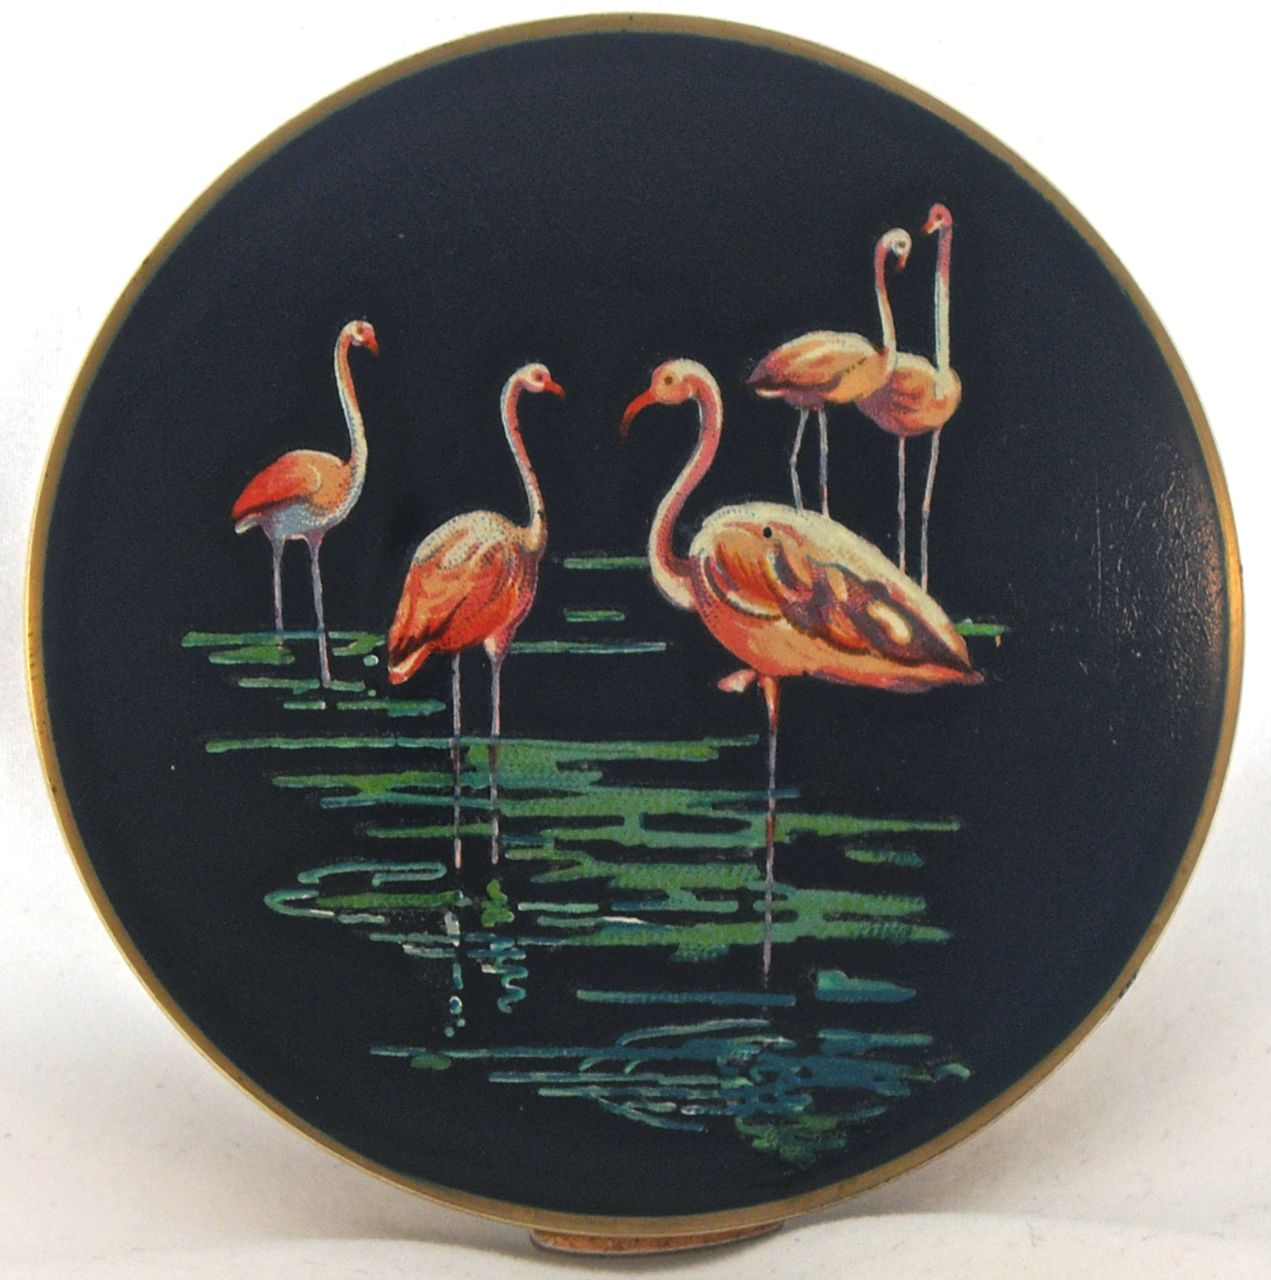 Vintage Stratton flamingo compact - probably 1950s or earliest 1960s